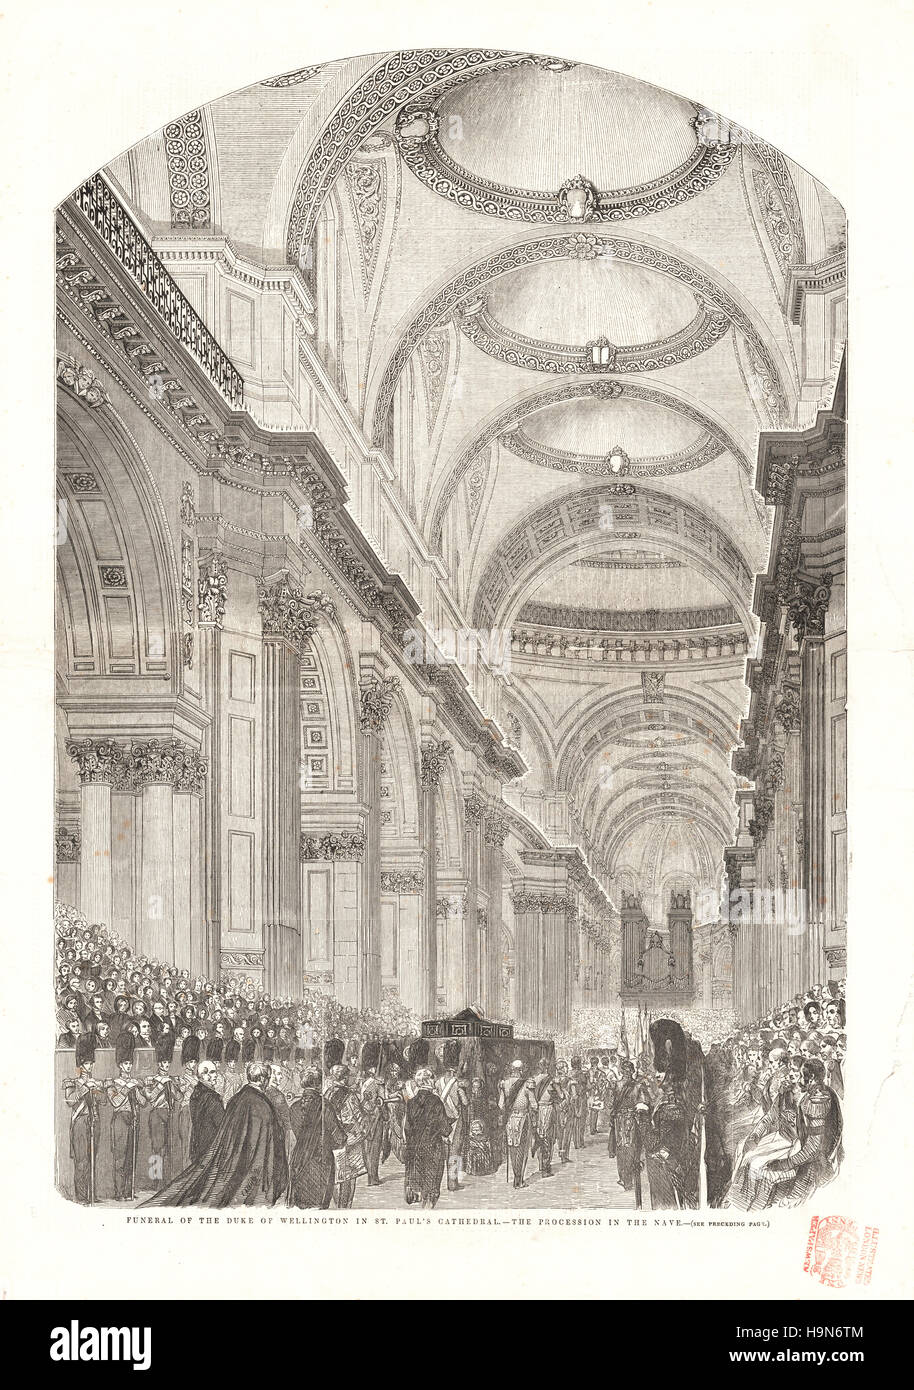 1852 Illustrated London News centre page Funeral of the Duke of Wellington - Stock Image